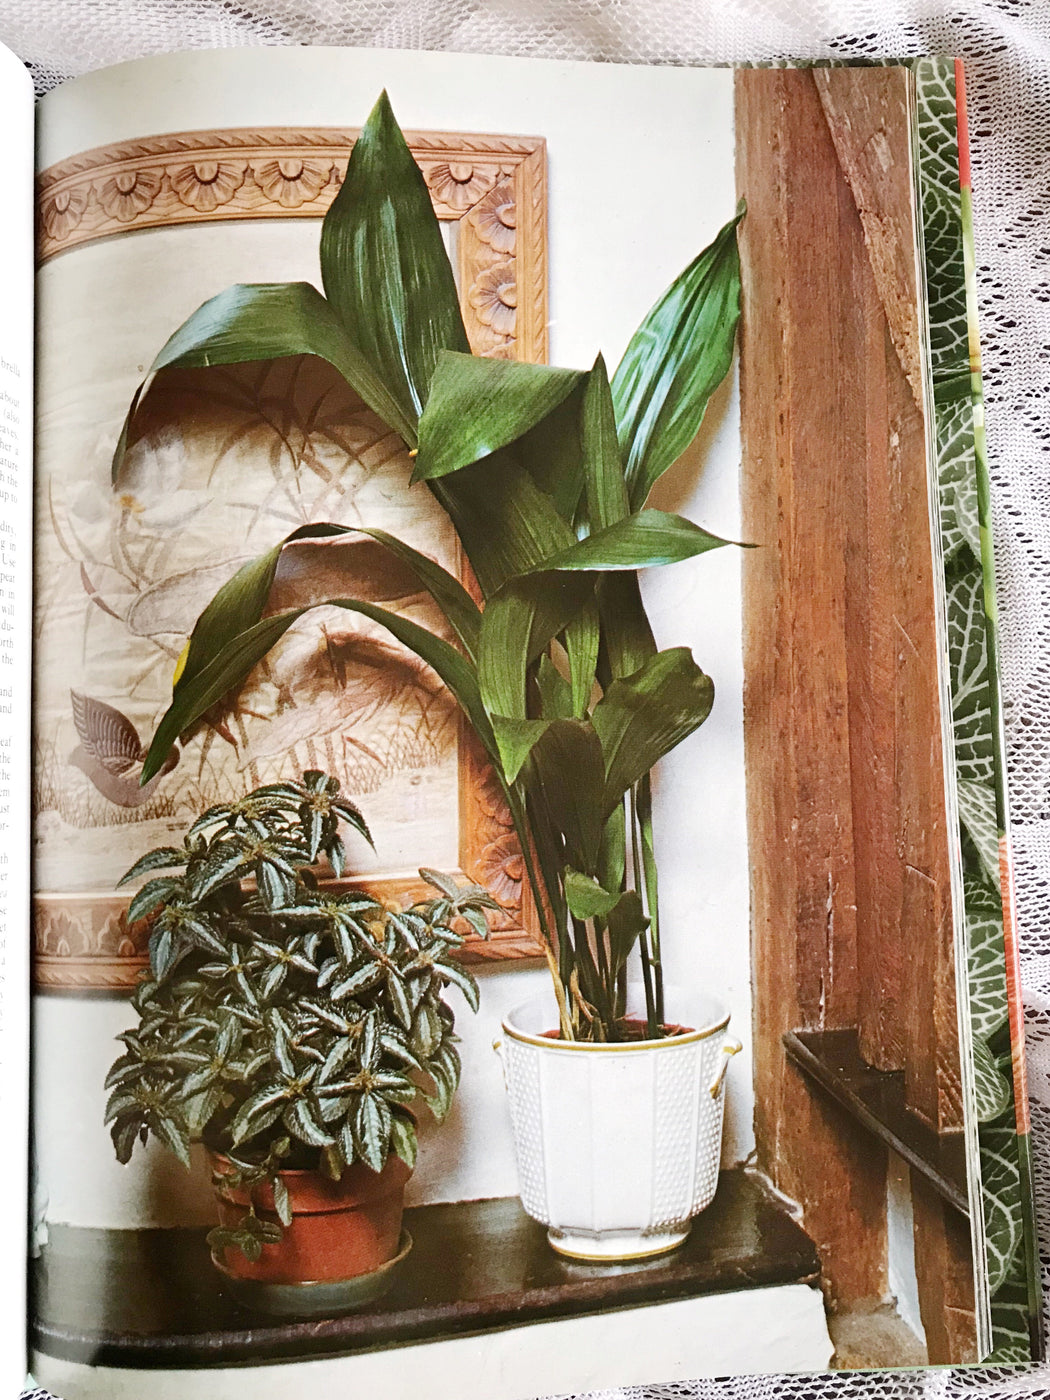 The Wonderful World of Indoor Plants - By Ann Bonar